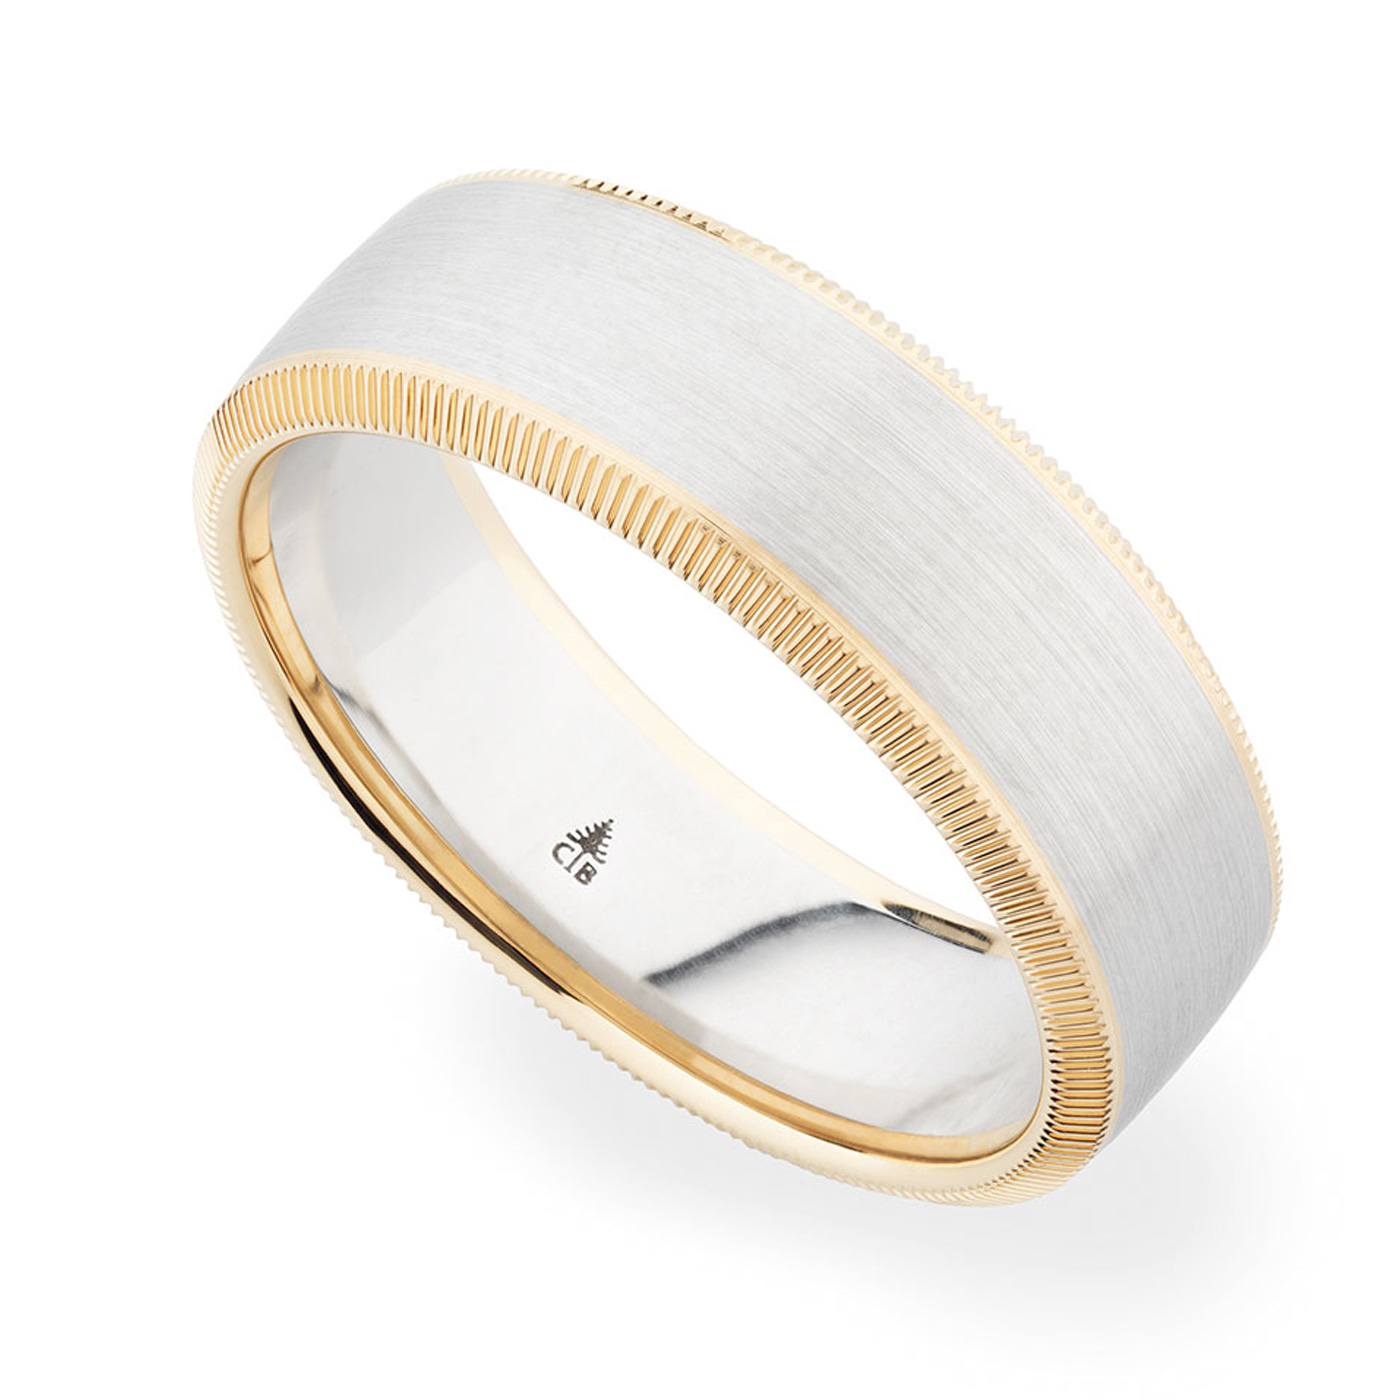 274469 christian bauer 14 karat wedding ring band tq for Christian bauer wedding rings